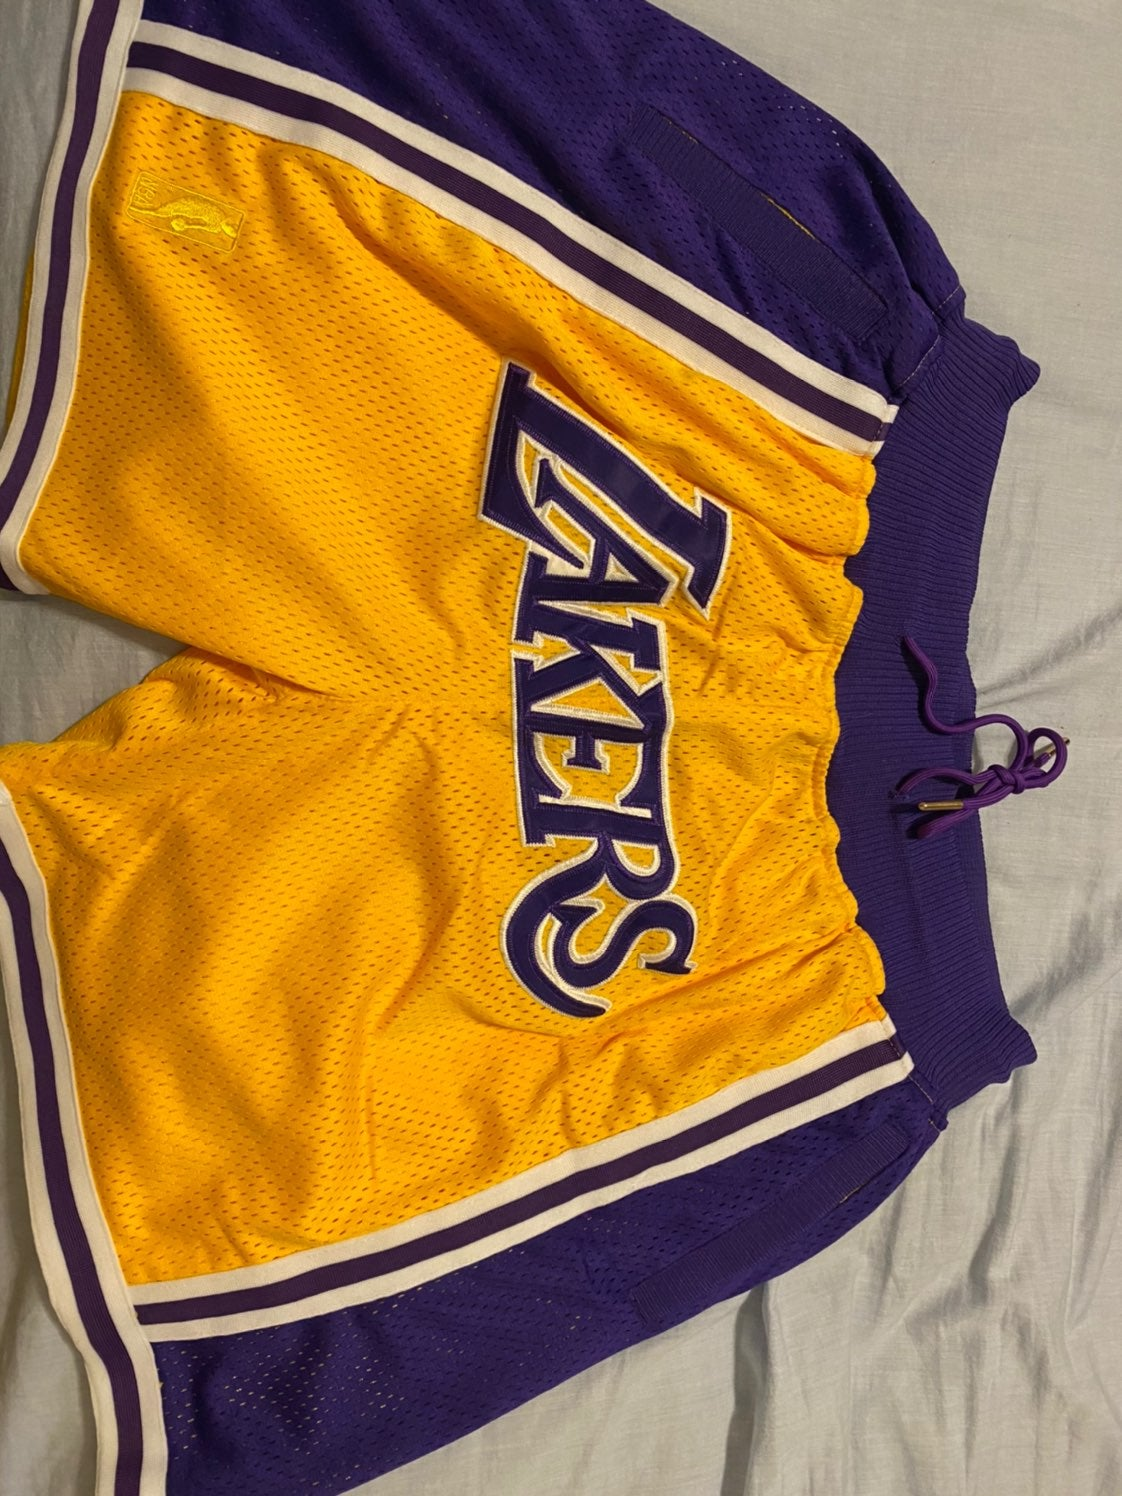 Mitchell and Ness Lakers Shorts